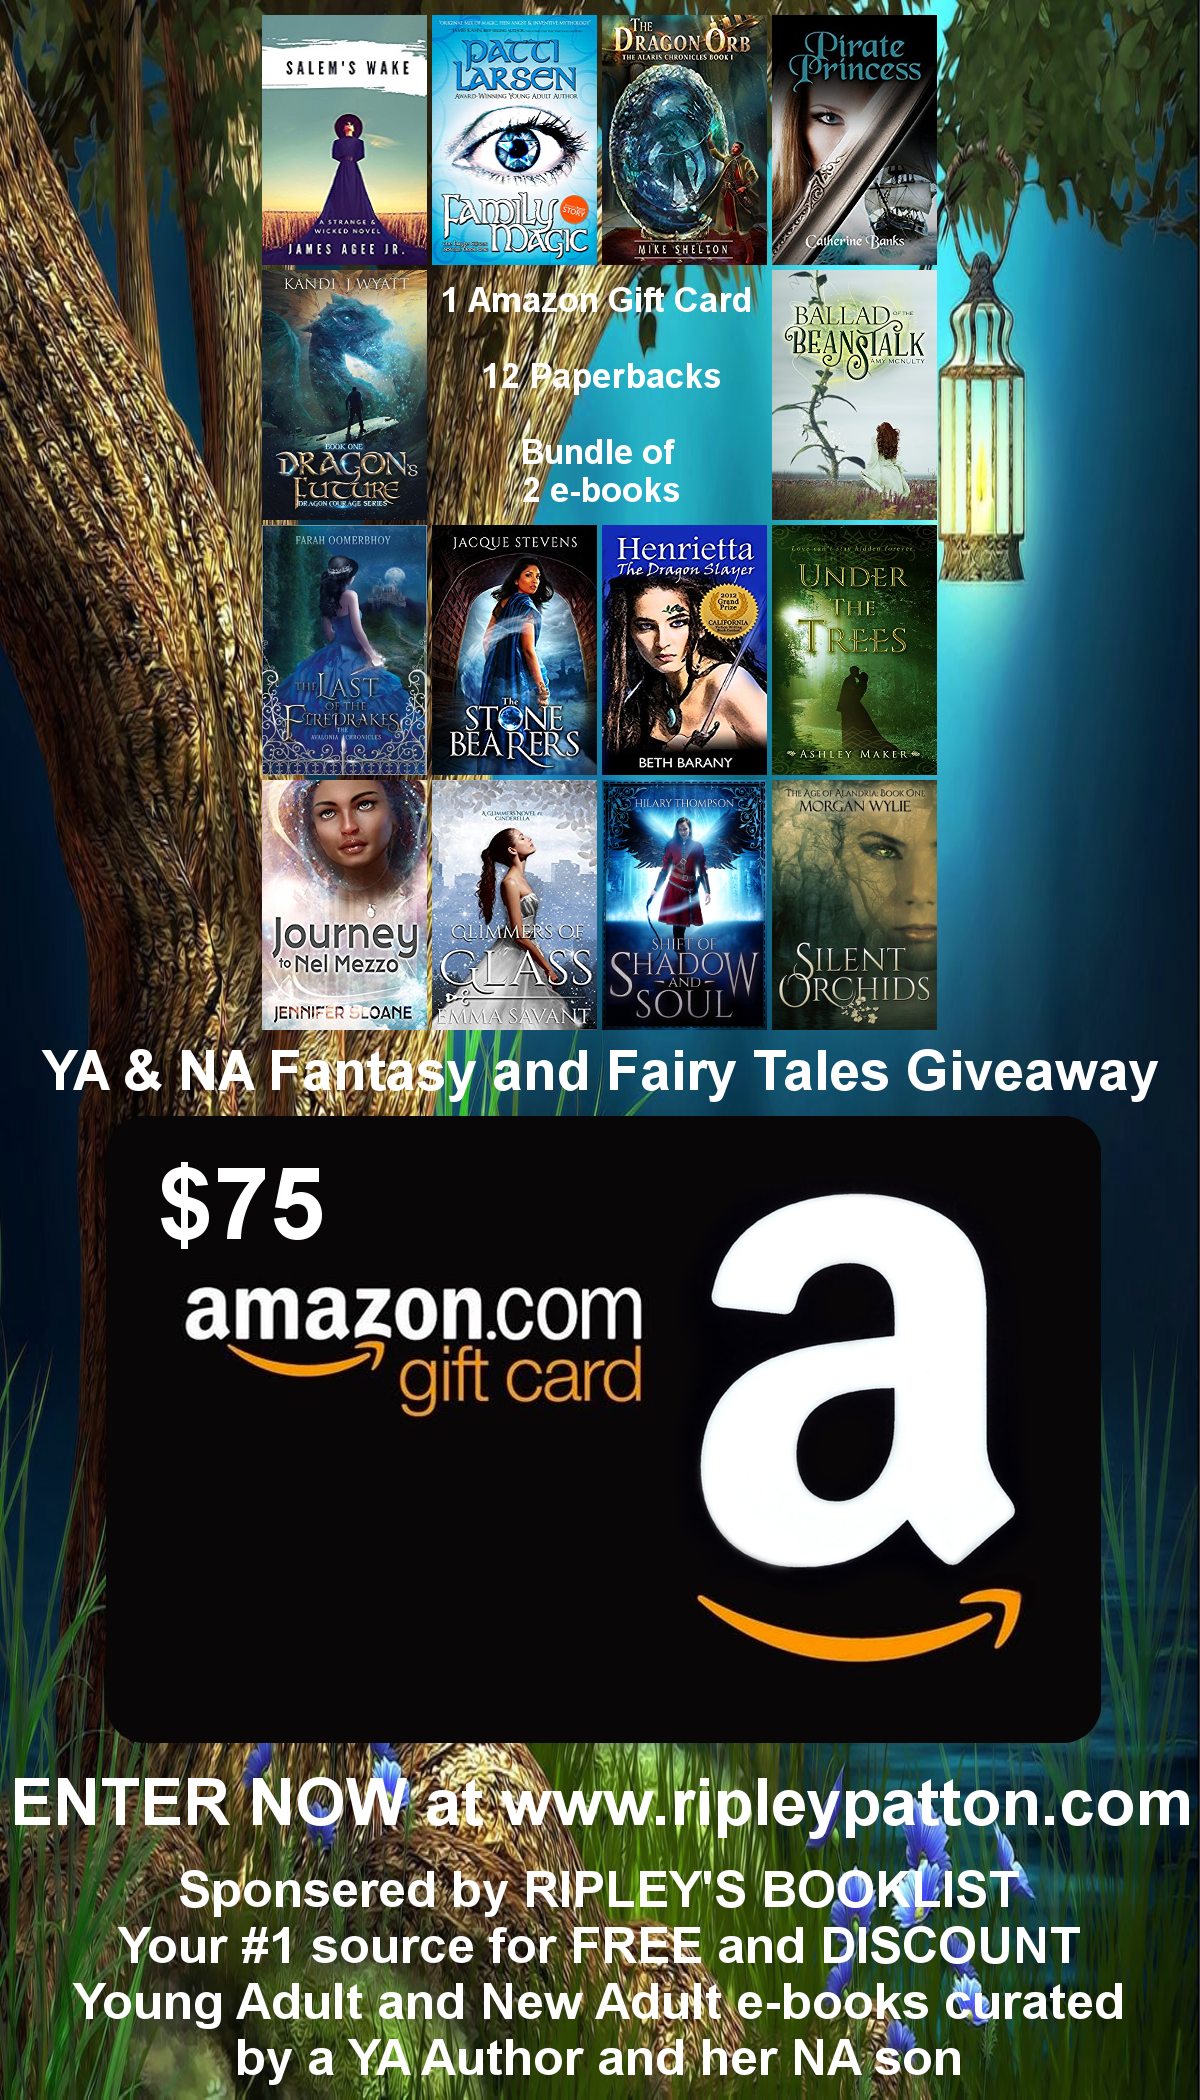 Check Out All The Cool Books And Prizes You Can Win!